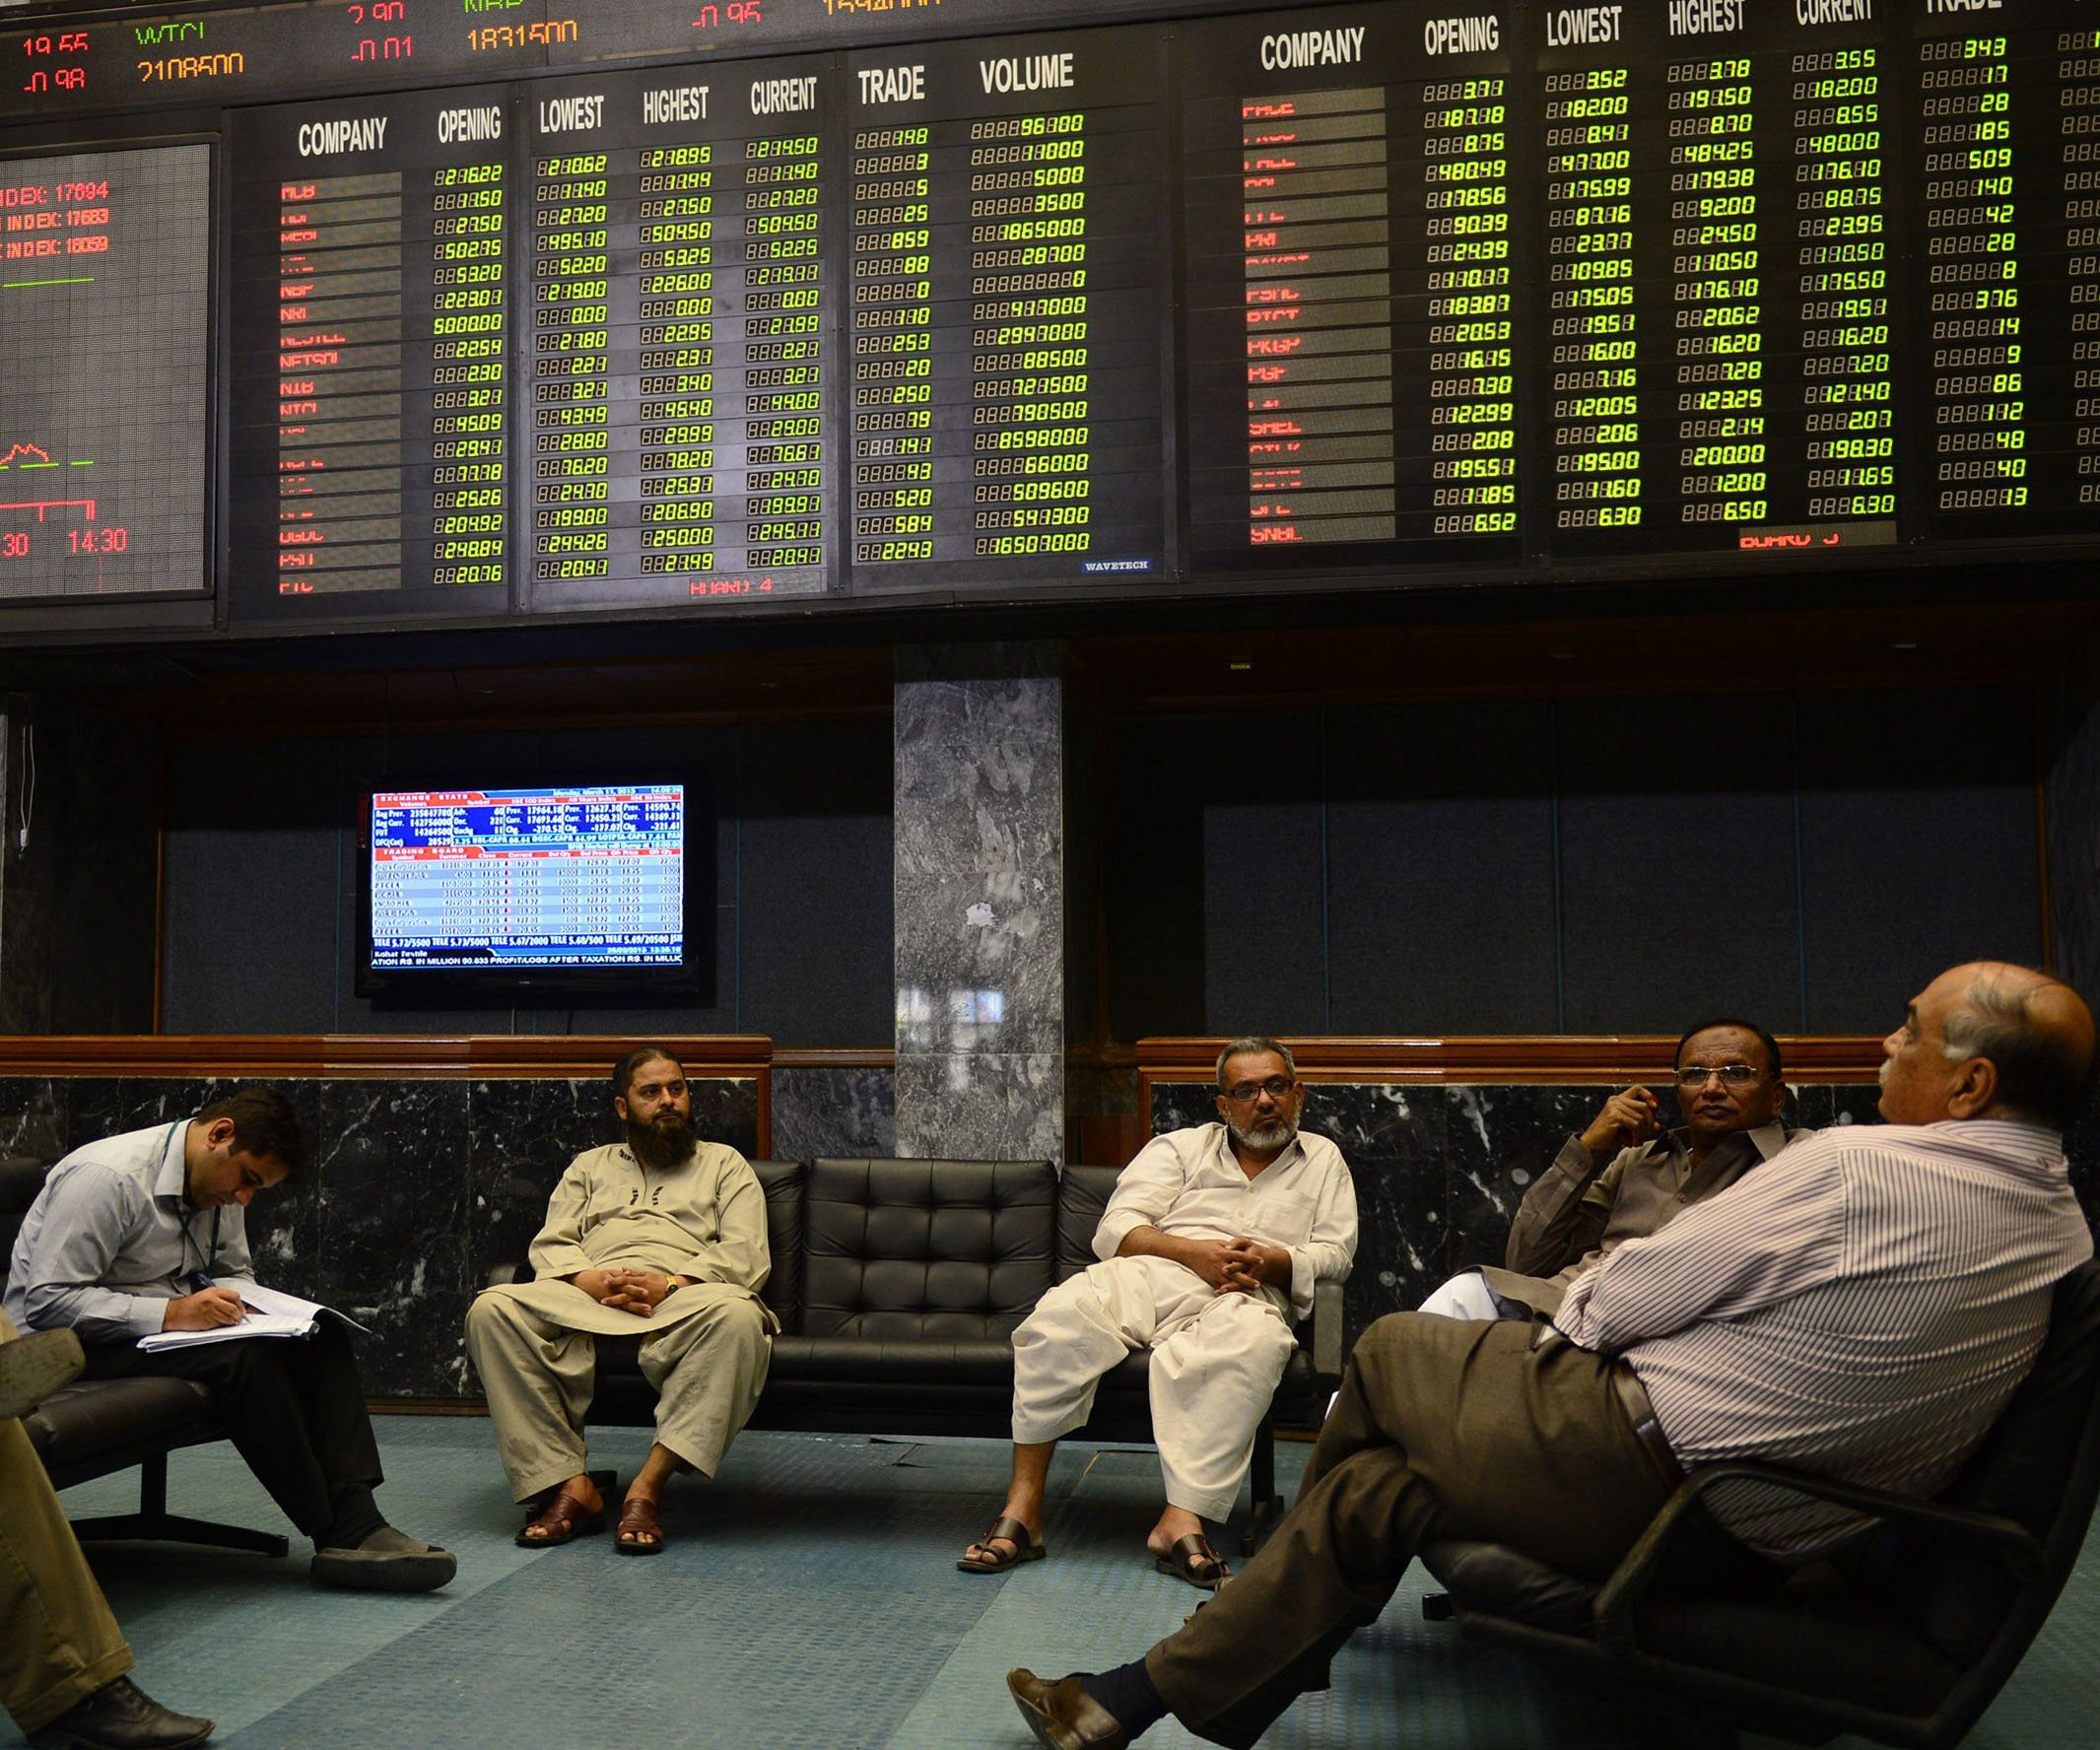 market watch kse 100 extends gains in volatile trading